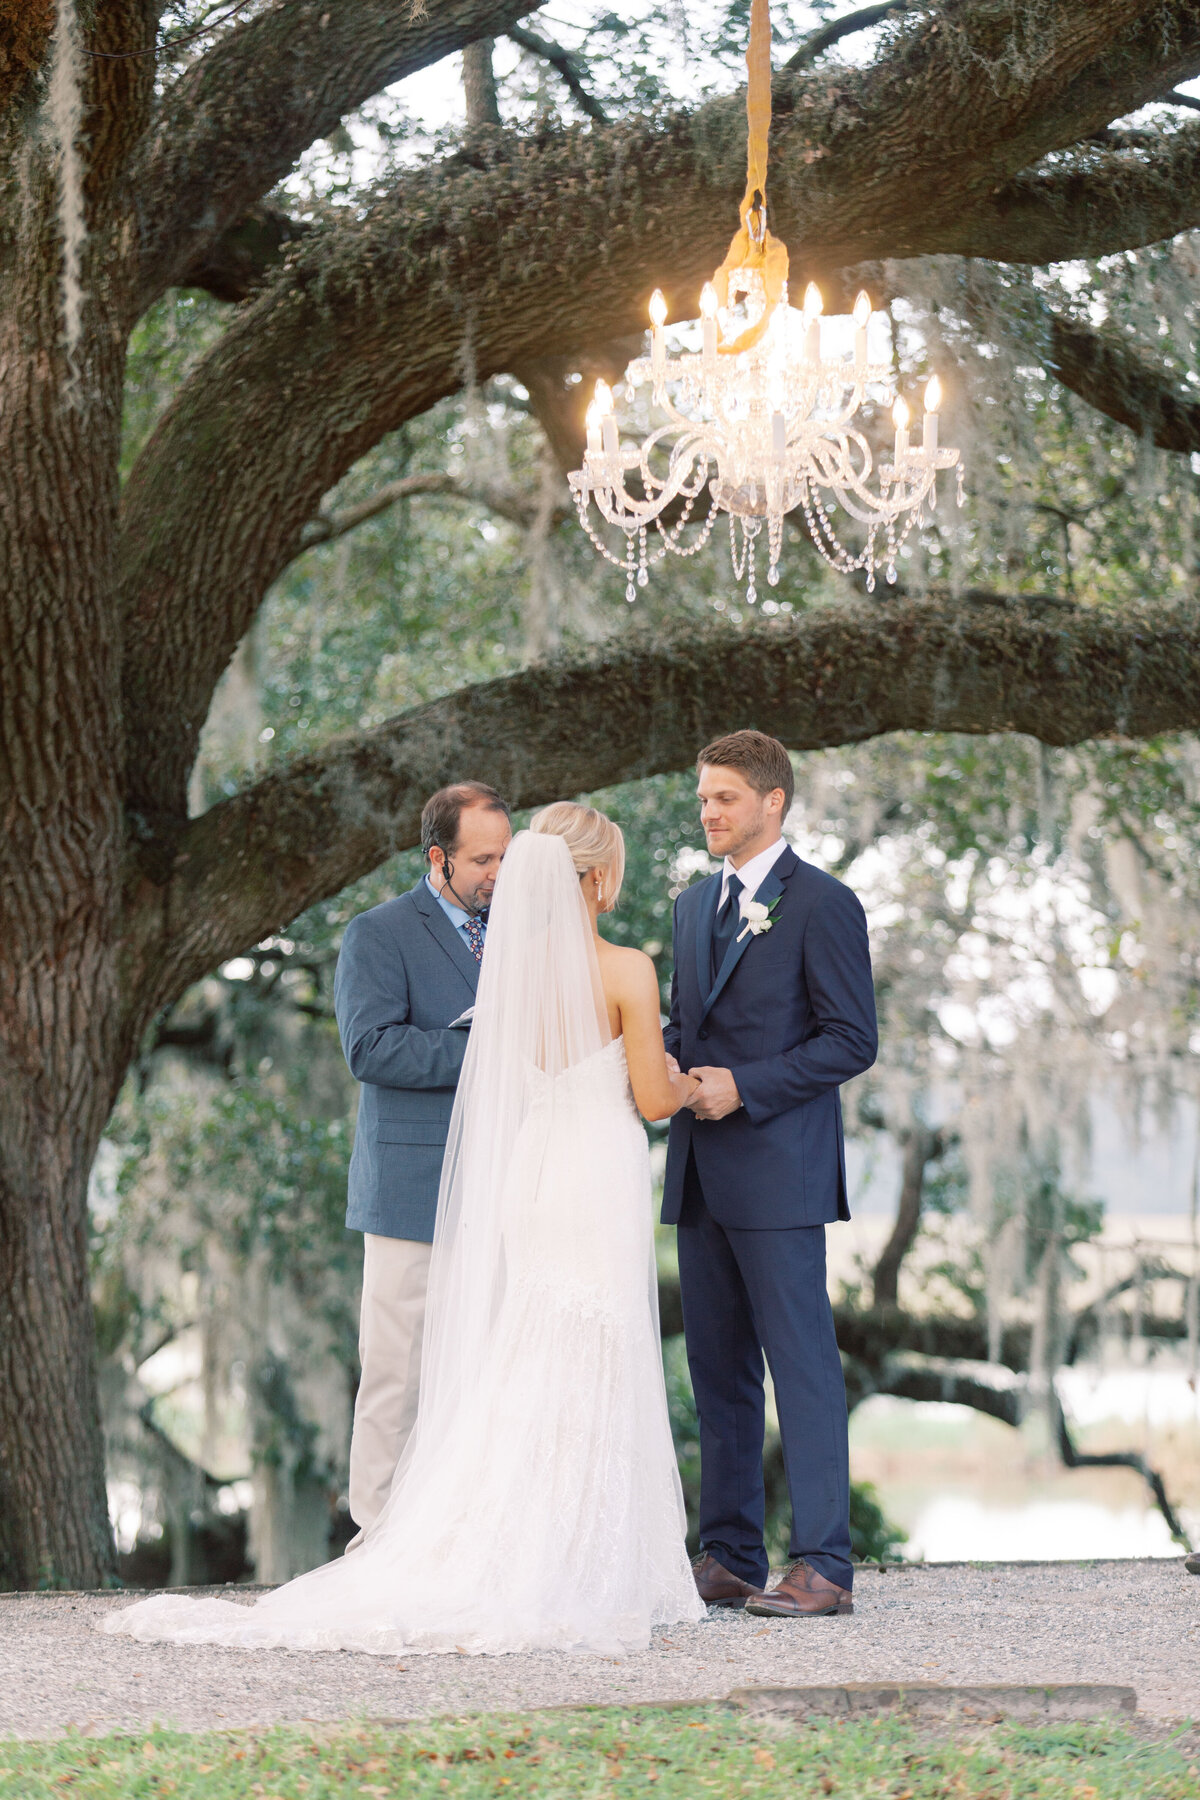 Melton_Wedding__Middleton_Place_Plantation_Charleston_South_Carolina_Jacksonville_Florida_Devon_Donnahoo_Photography__0631